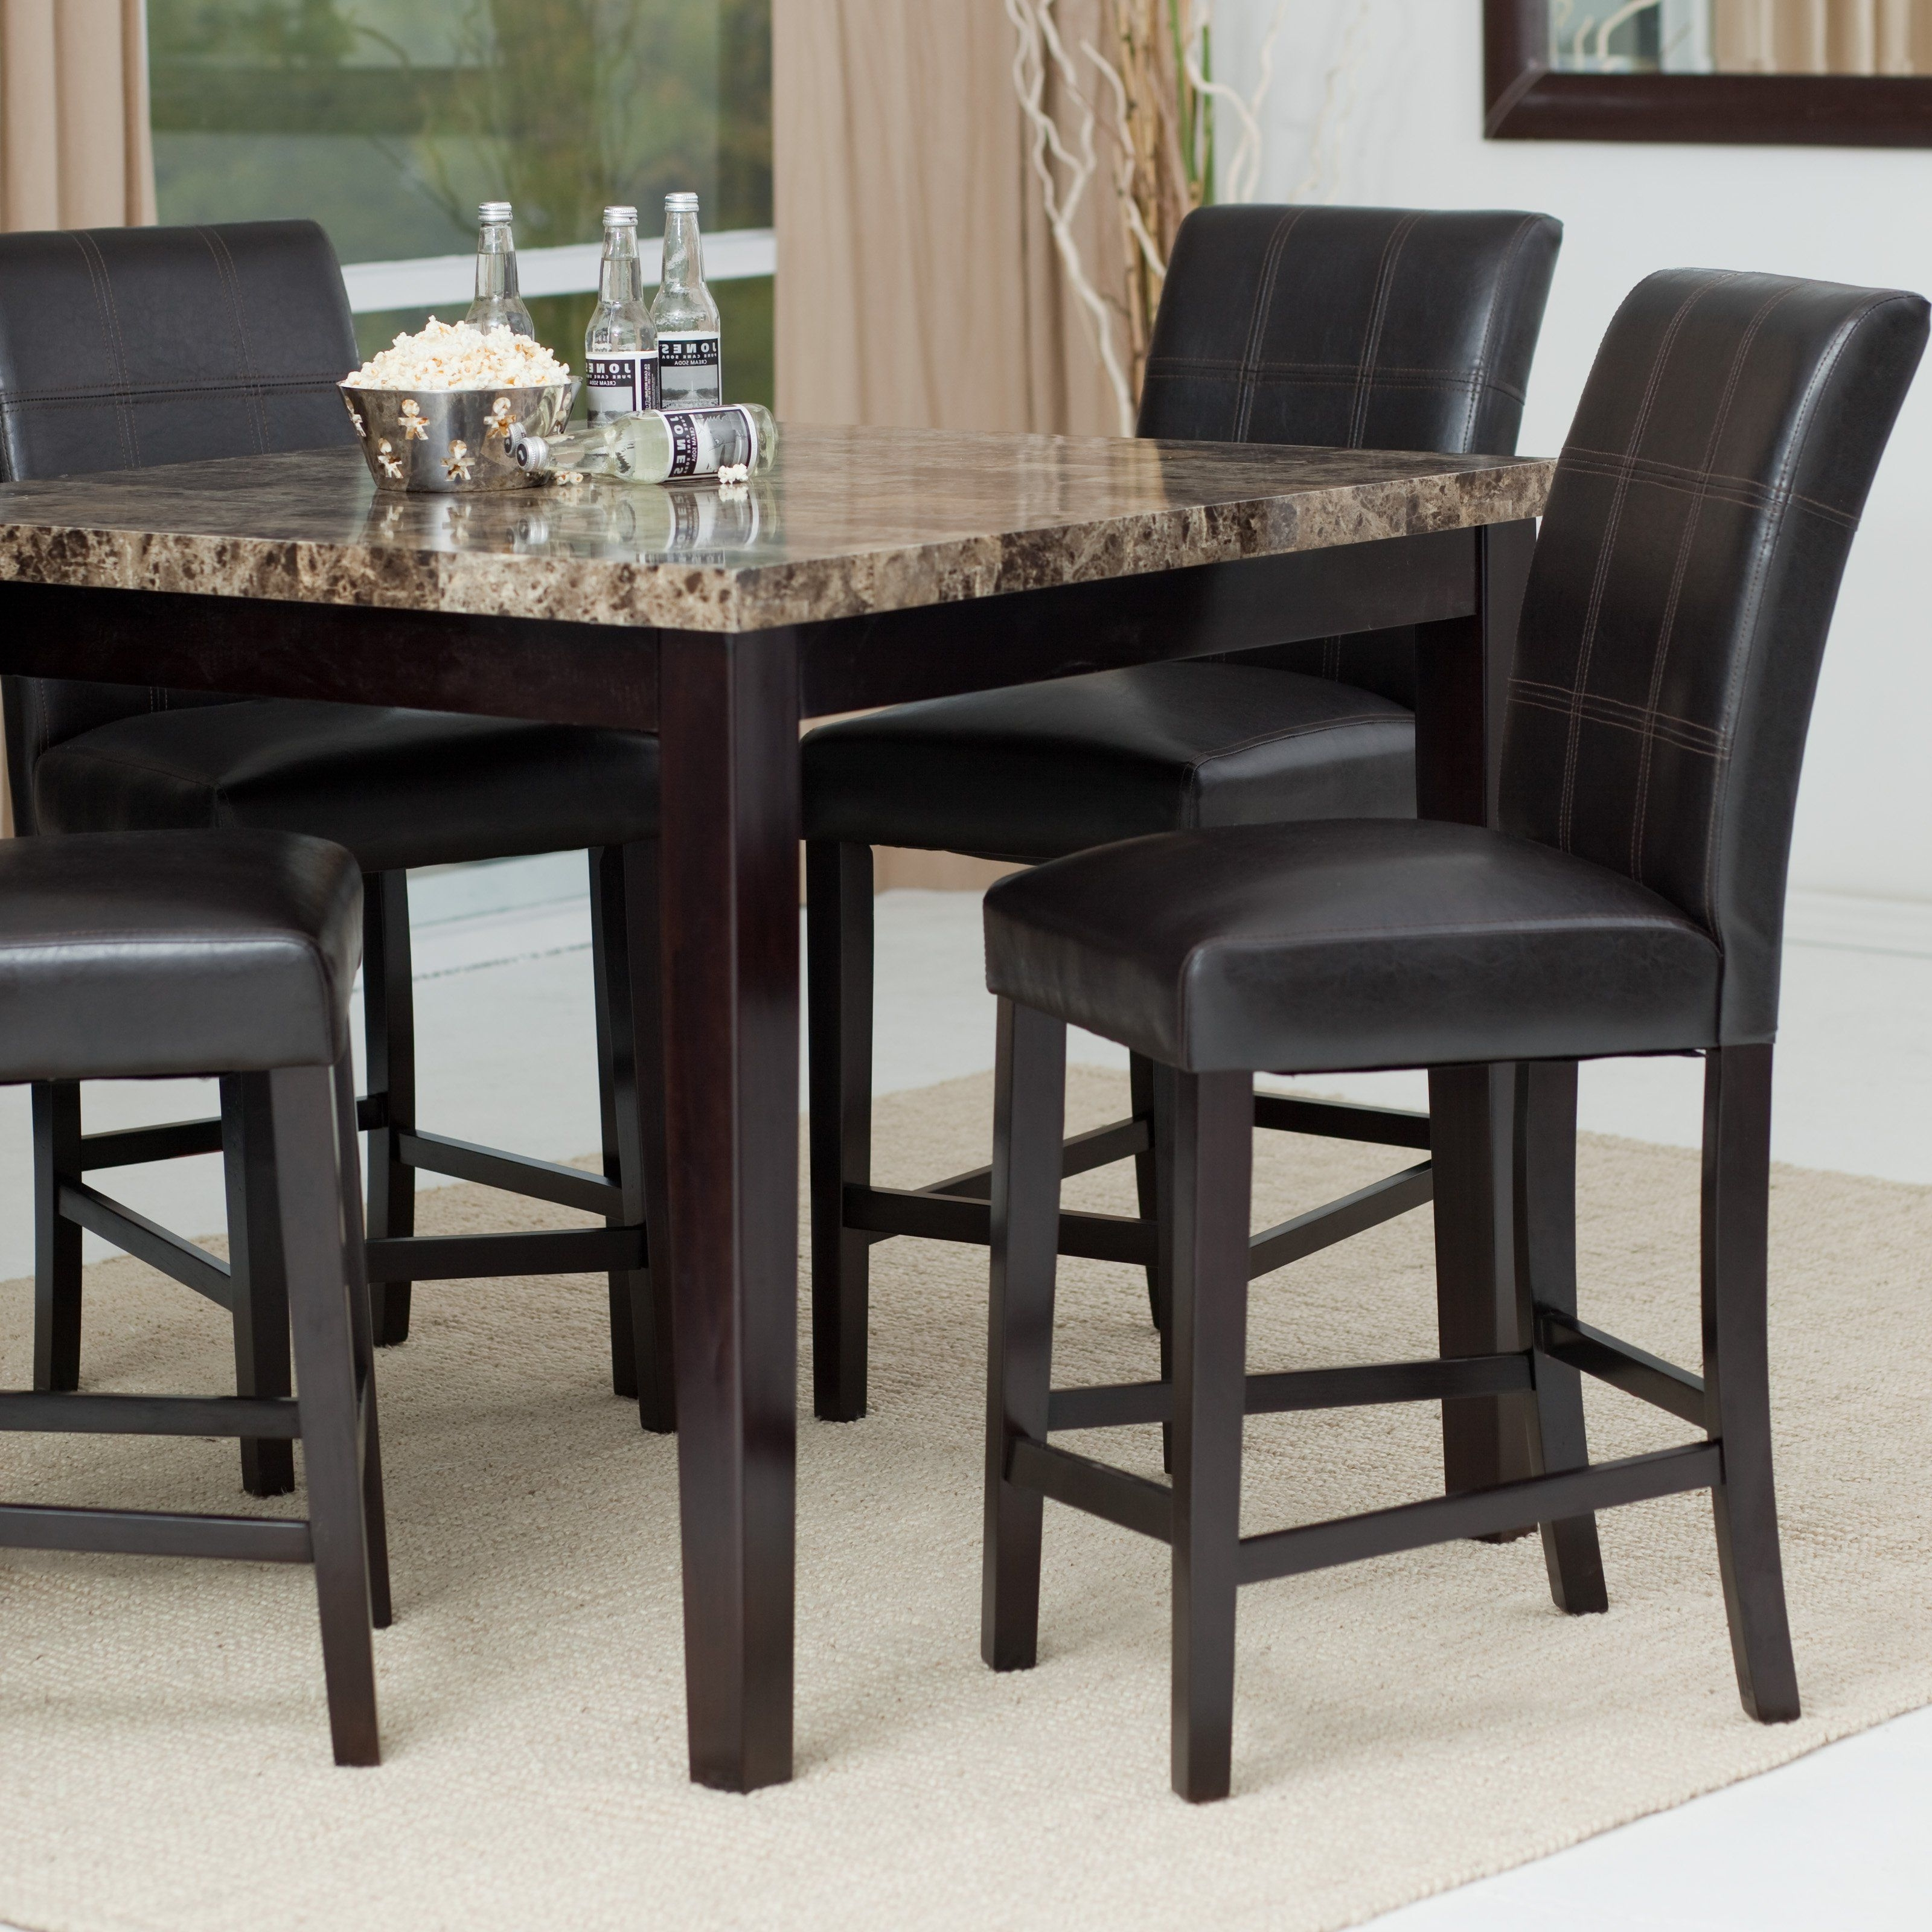 Have To Have It. Palazzo 5-Piece Counter Height Dining Set - $429.98 for Recent Palazzo Rectangle Dining Tables